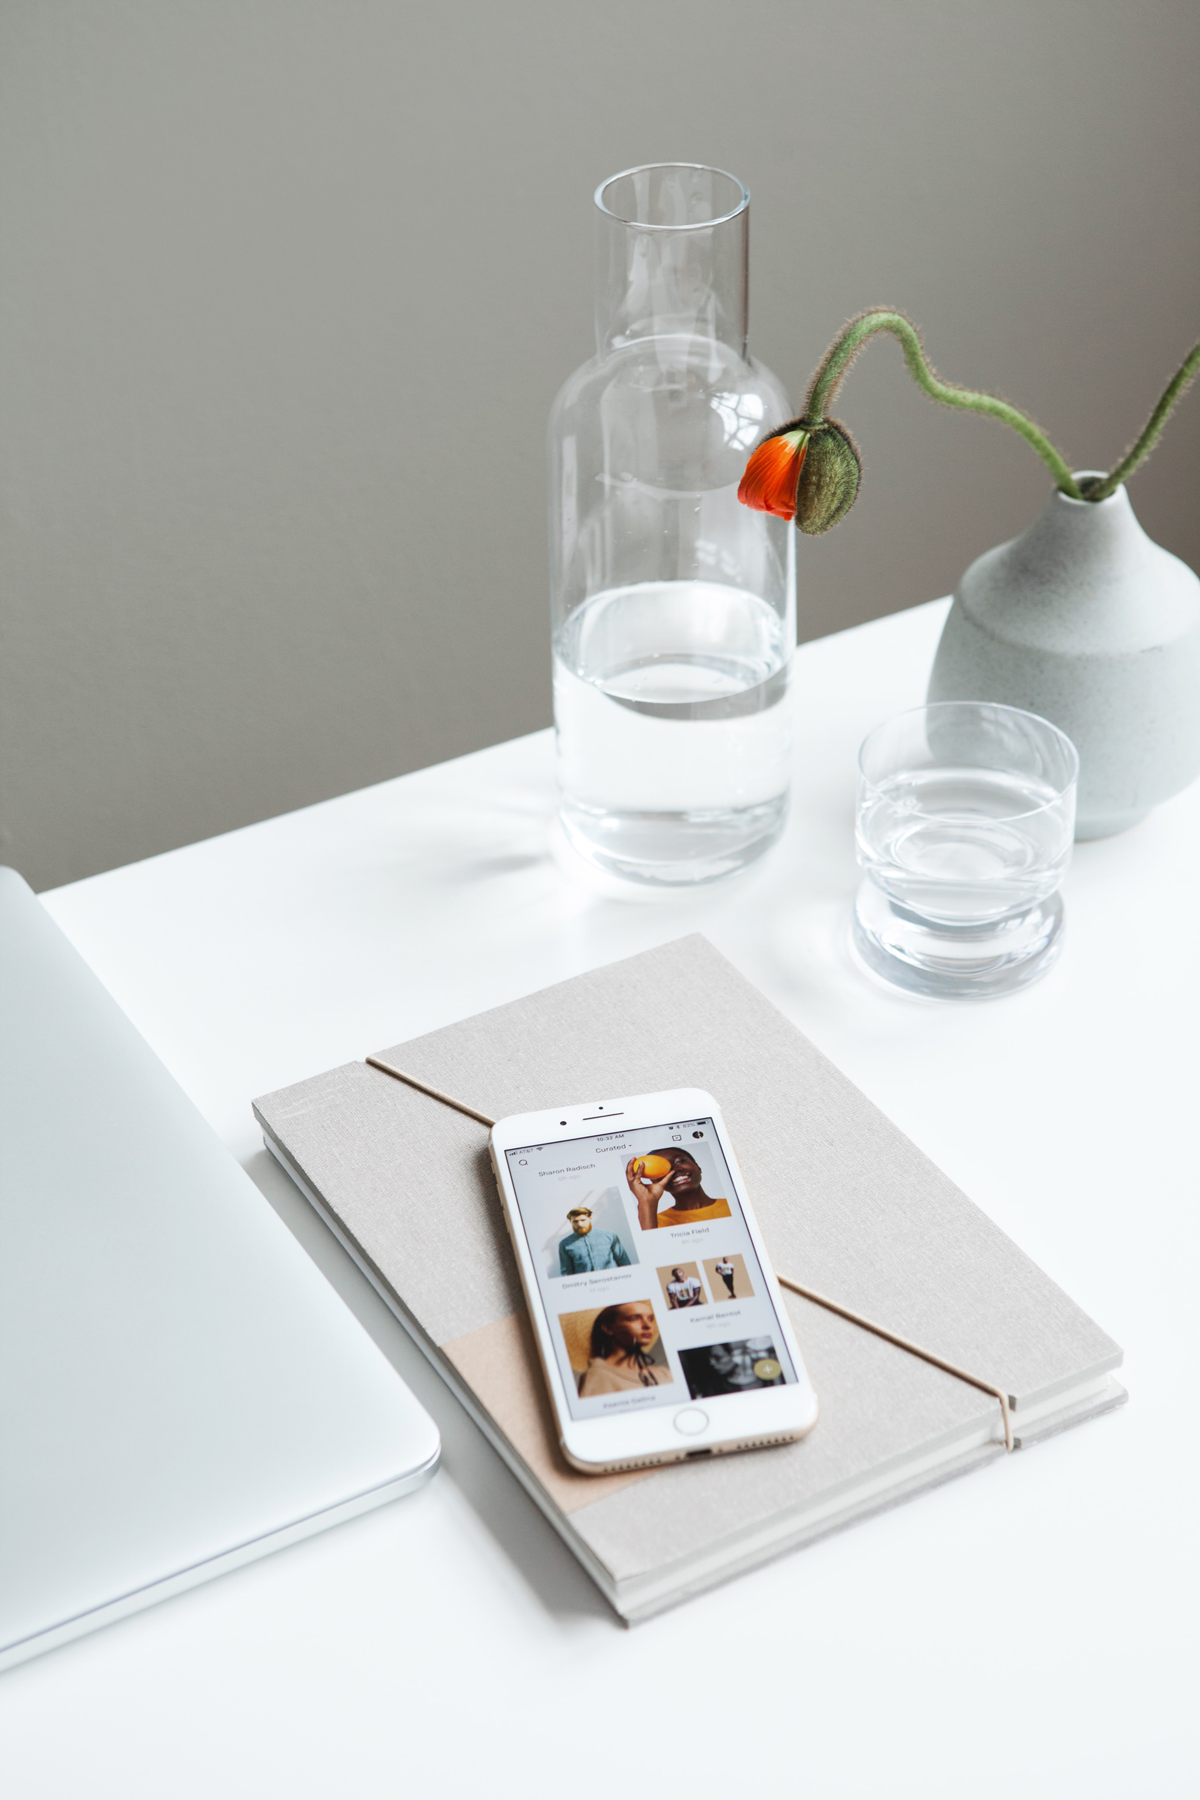 Artstel the next big platform for photographers, fashion and commercial photographers, mobile app, minimalist desk